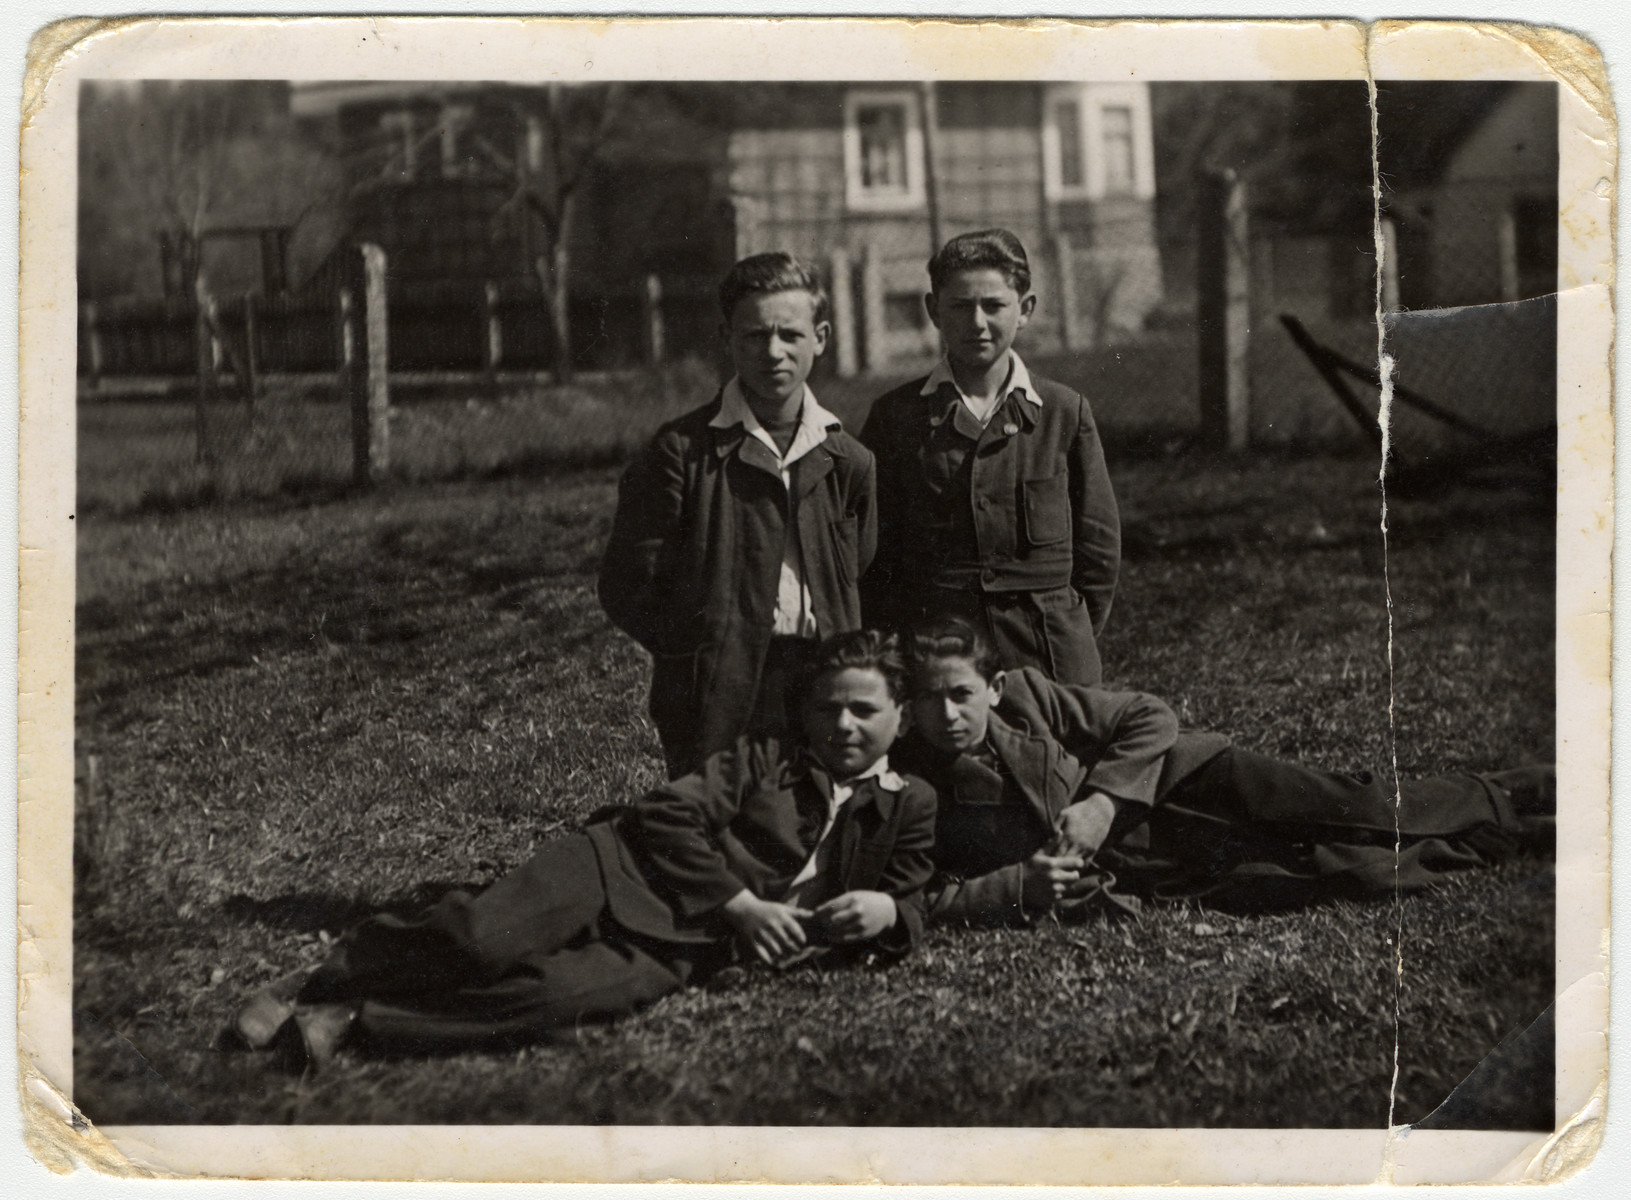 A group of young teenagers poses on the grounds of the Rosenheim displaced persons' camp.  Among those pictured is Tzvi Brill (second row, right) and Hirsch Yakubowicz who was killed by the British while a passenger on board the Exodus.